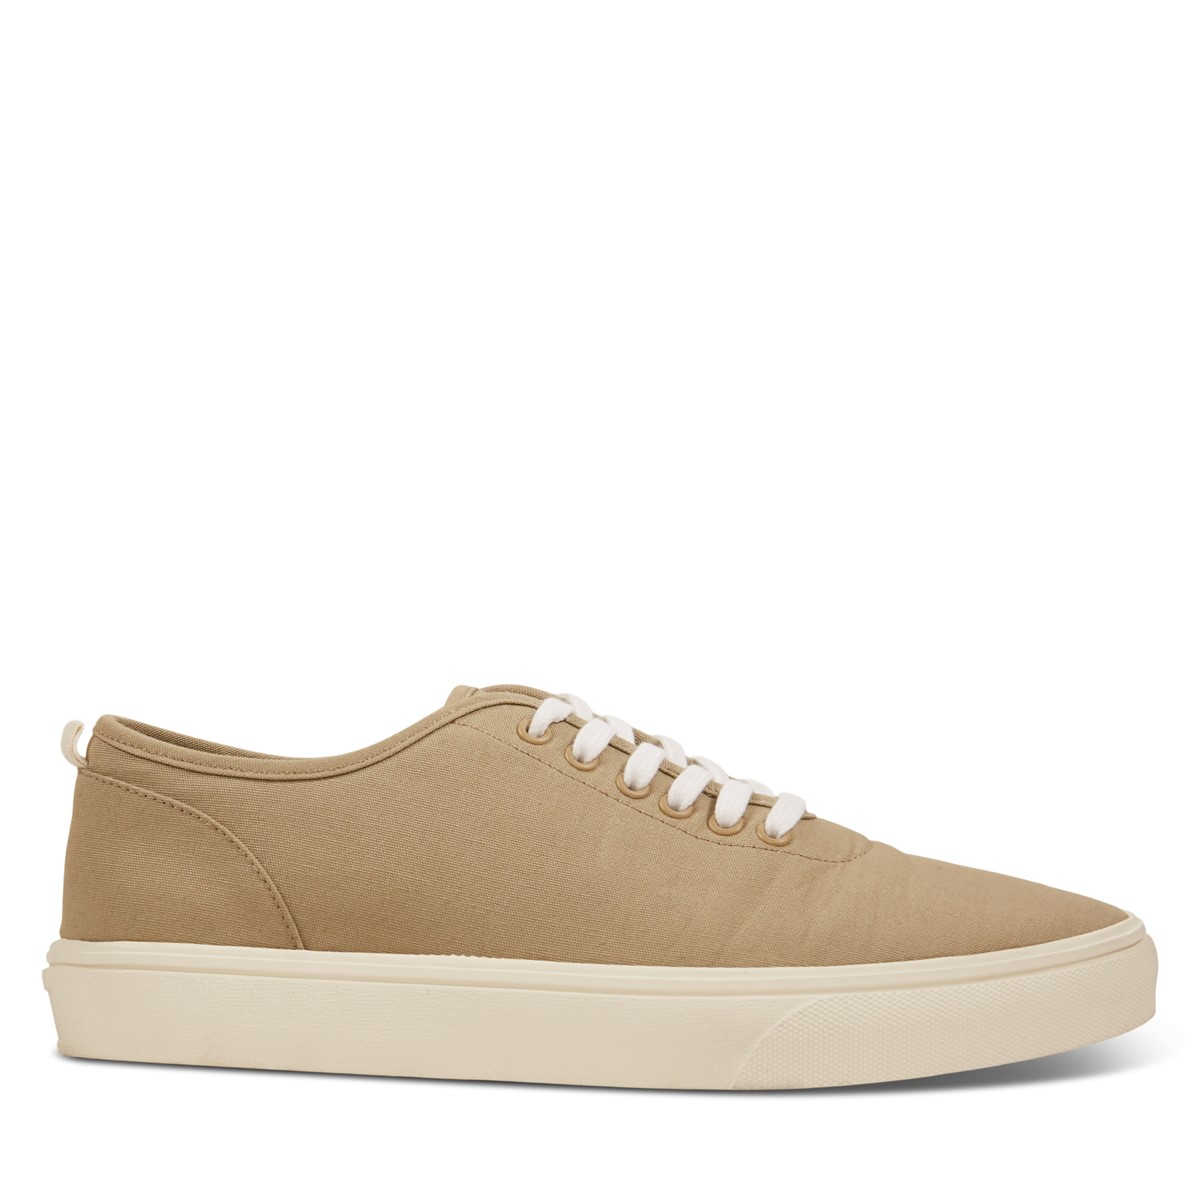 Men's Lennox Lace-Up Shoes in Taupe